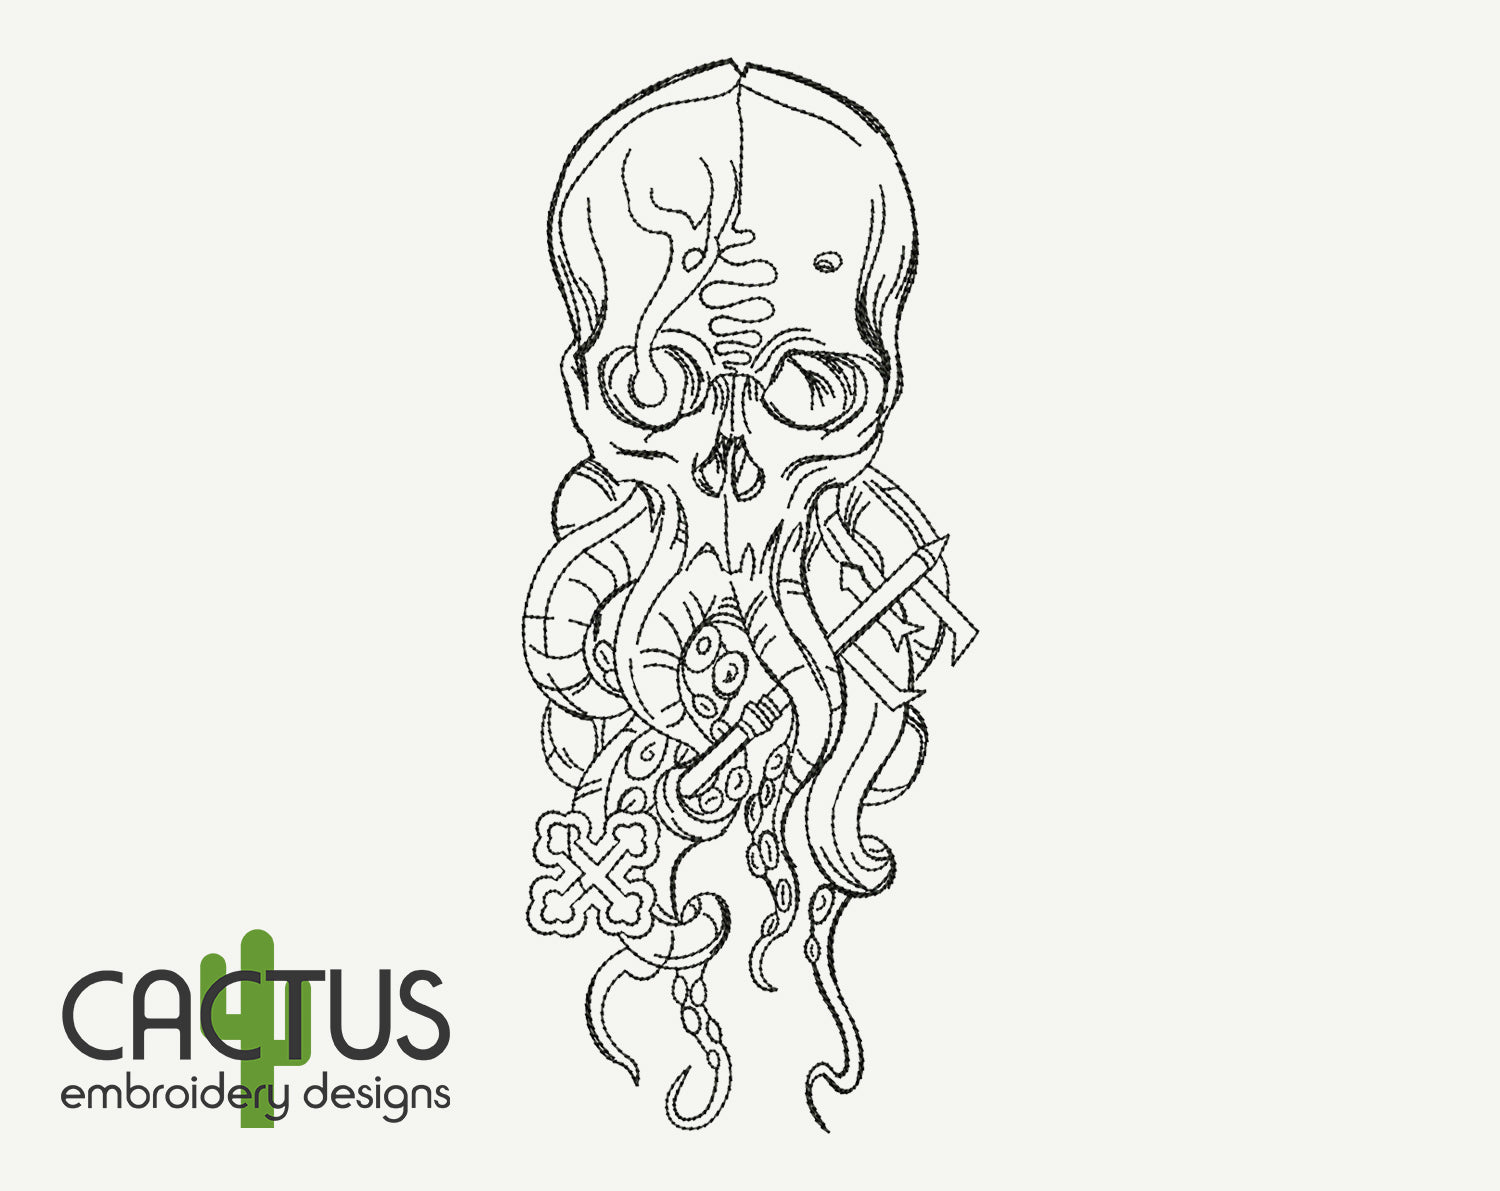 Octopus Skull Embroidery Design